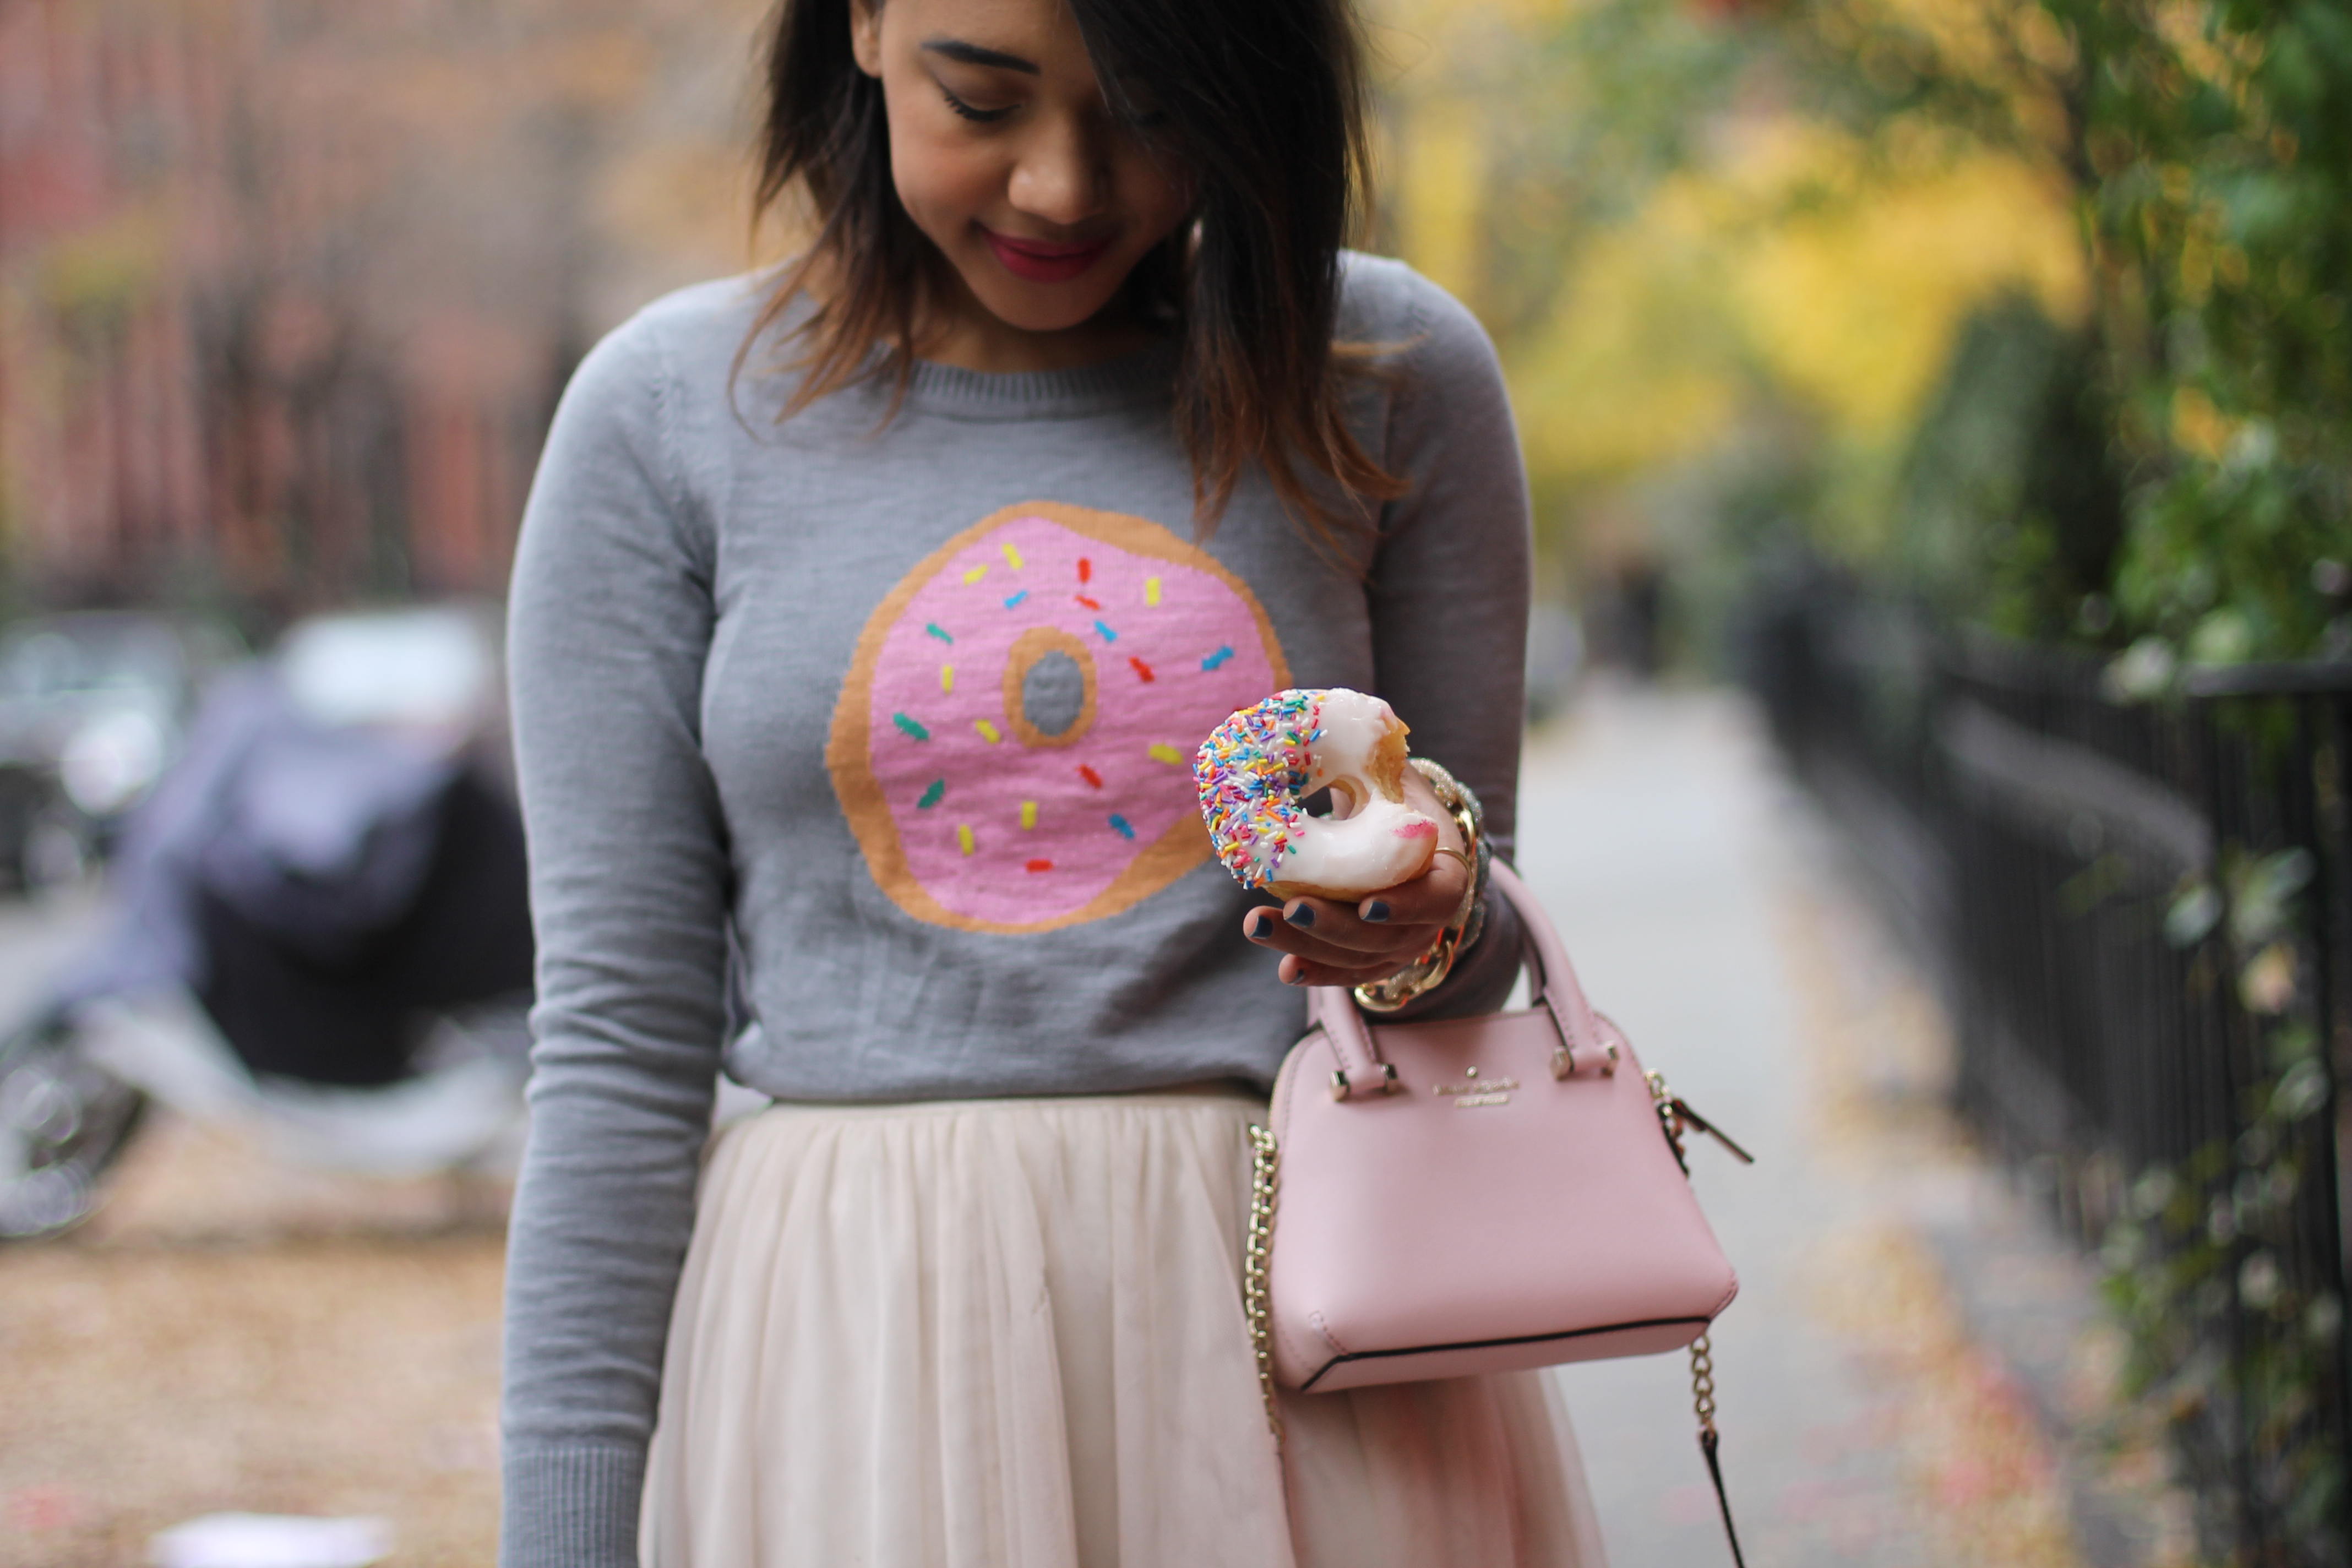 donut sweater how to wear a donut sweater donut sweatshirt donut sweater target donut sweater doughnut sweater doughnut sweater doughnut sweater donut sweater color me courtney donut obsessed